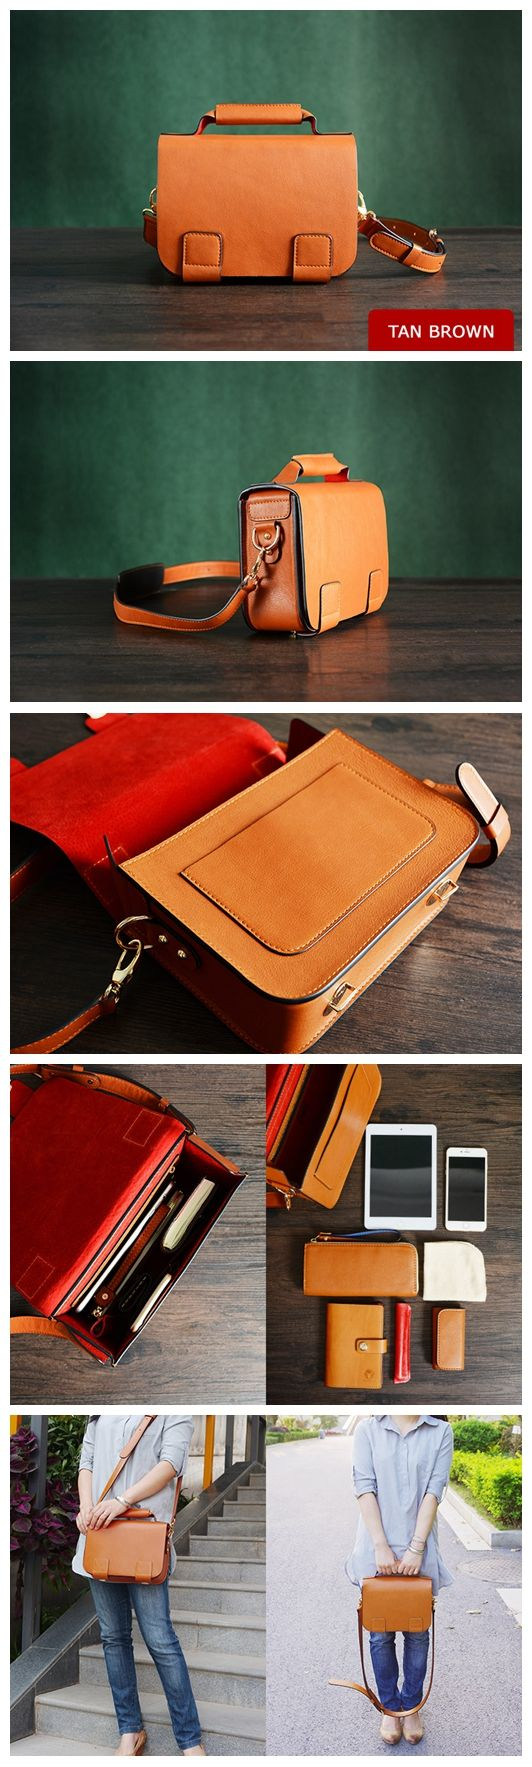 Custom Handmade Italian Vegetable Tan Brown Leather Satchel Bag, Messenger Bag, Shoulder Bag